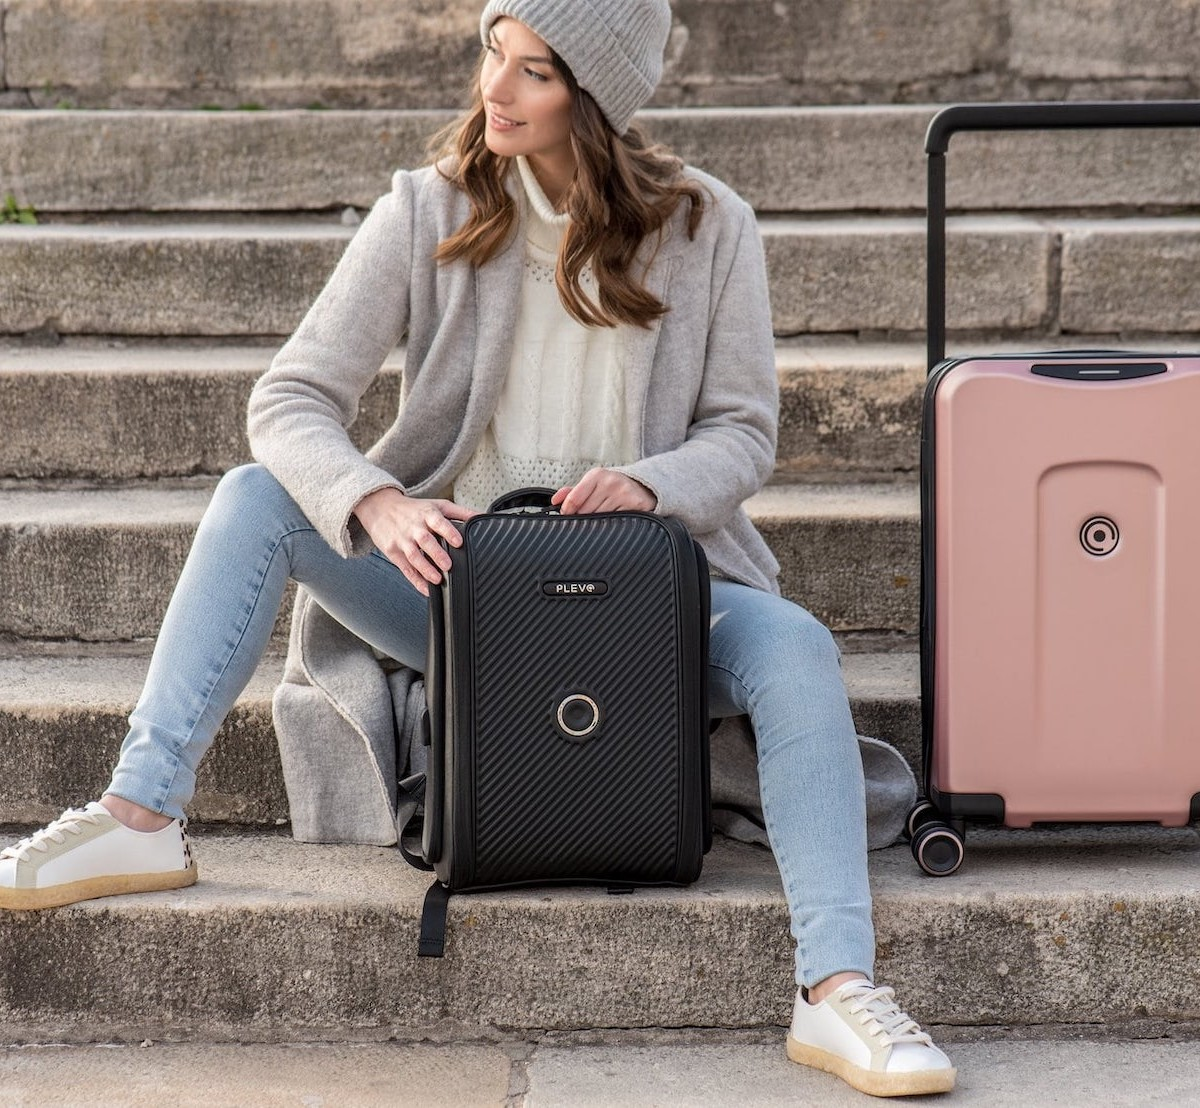 Plevo B-One & D-One Series Smart Travel Bags use intelligent lock technology to secure your belongings